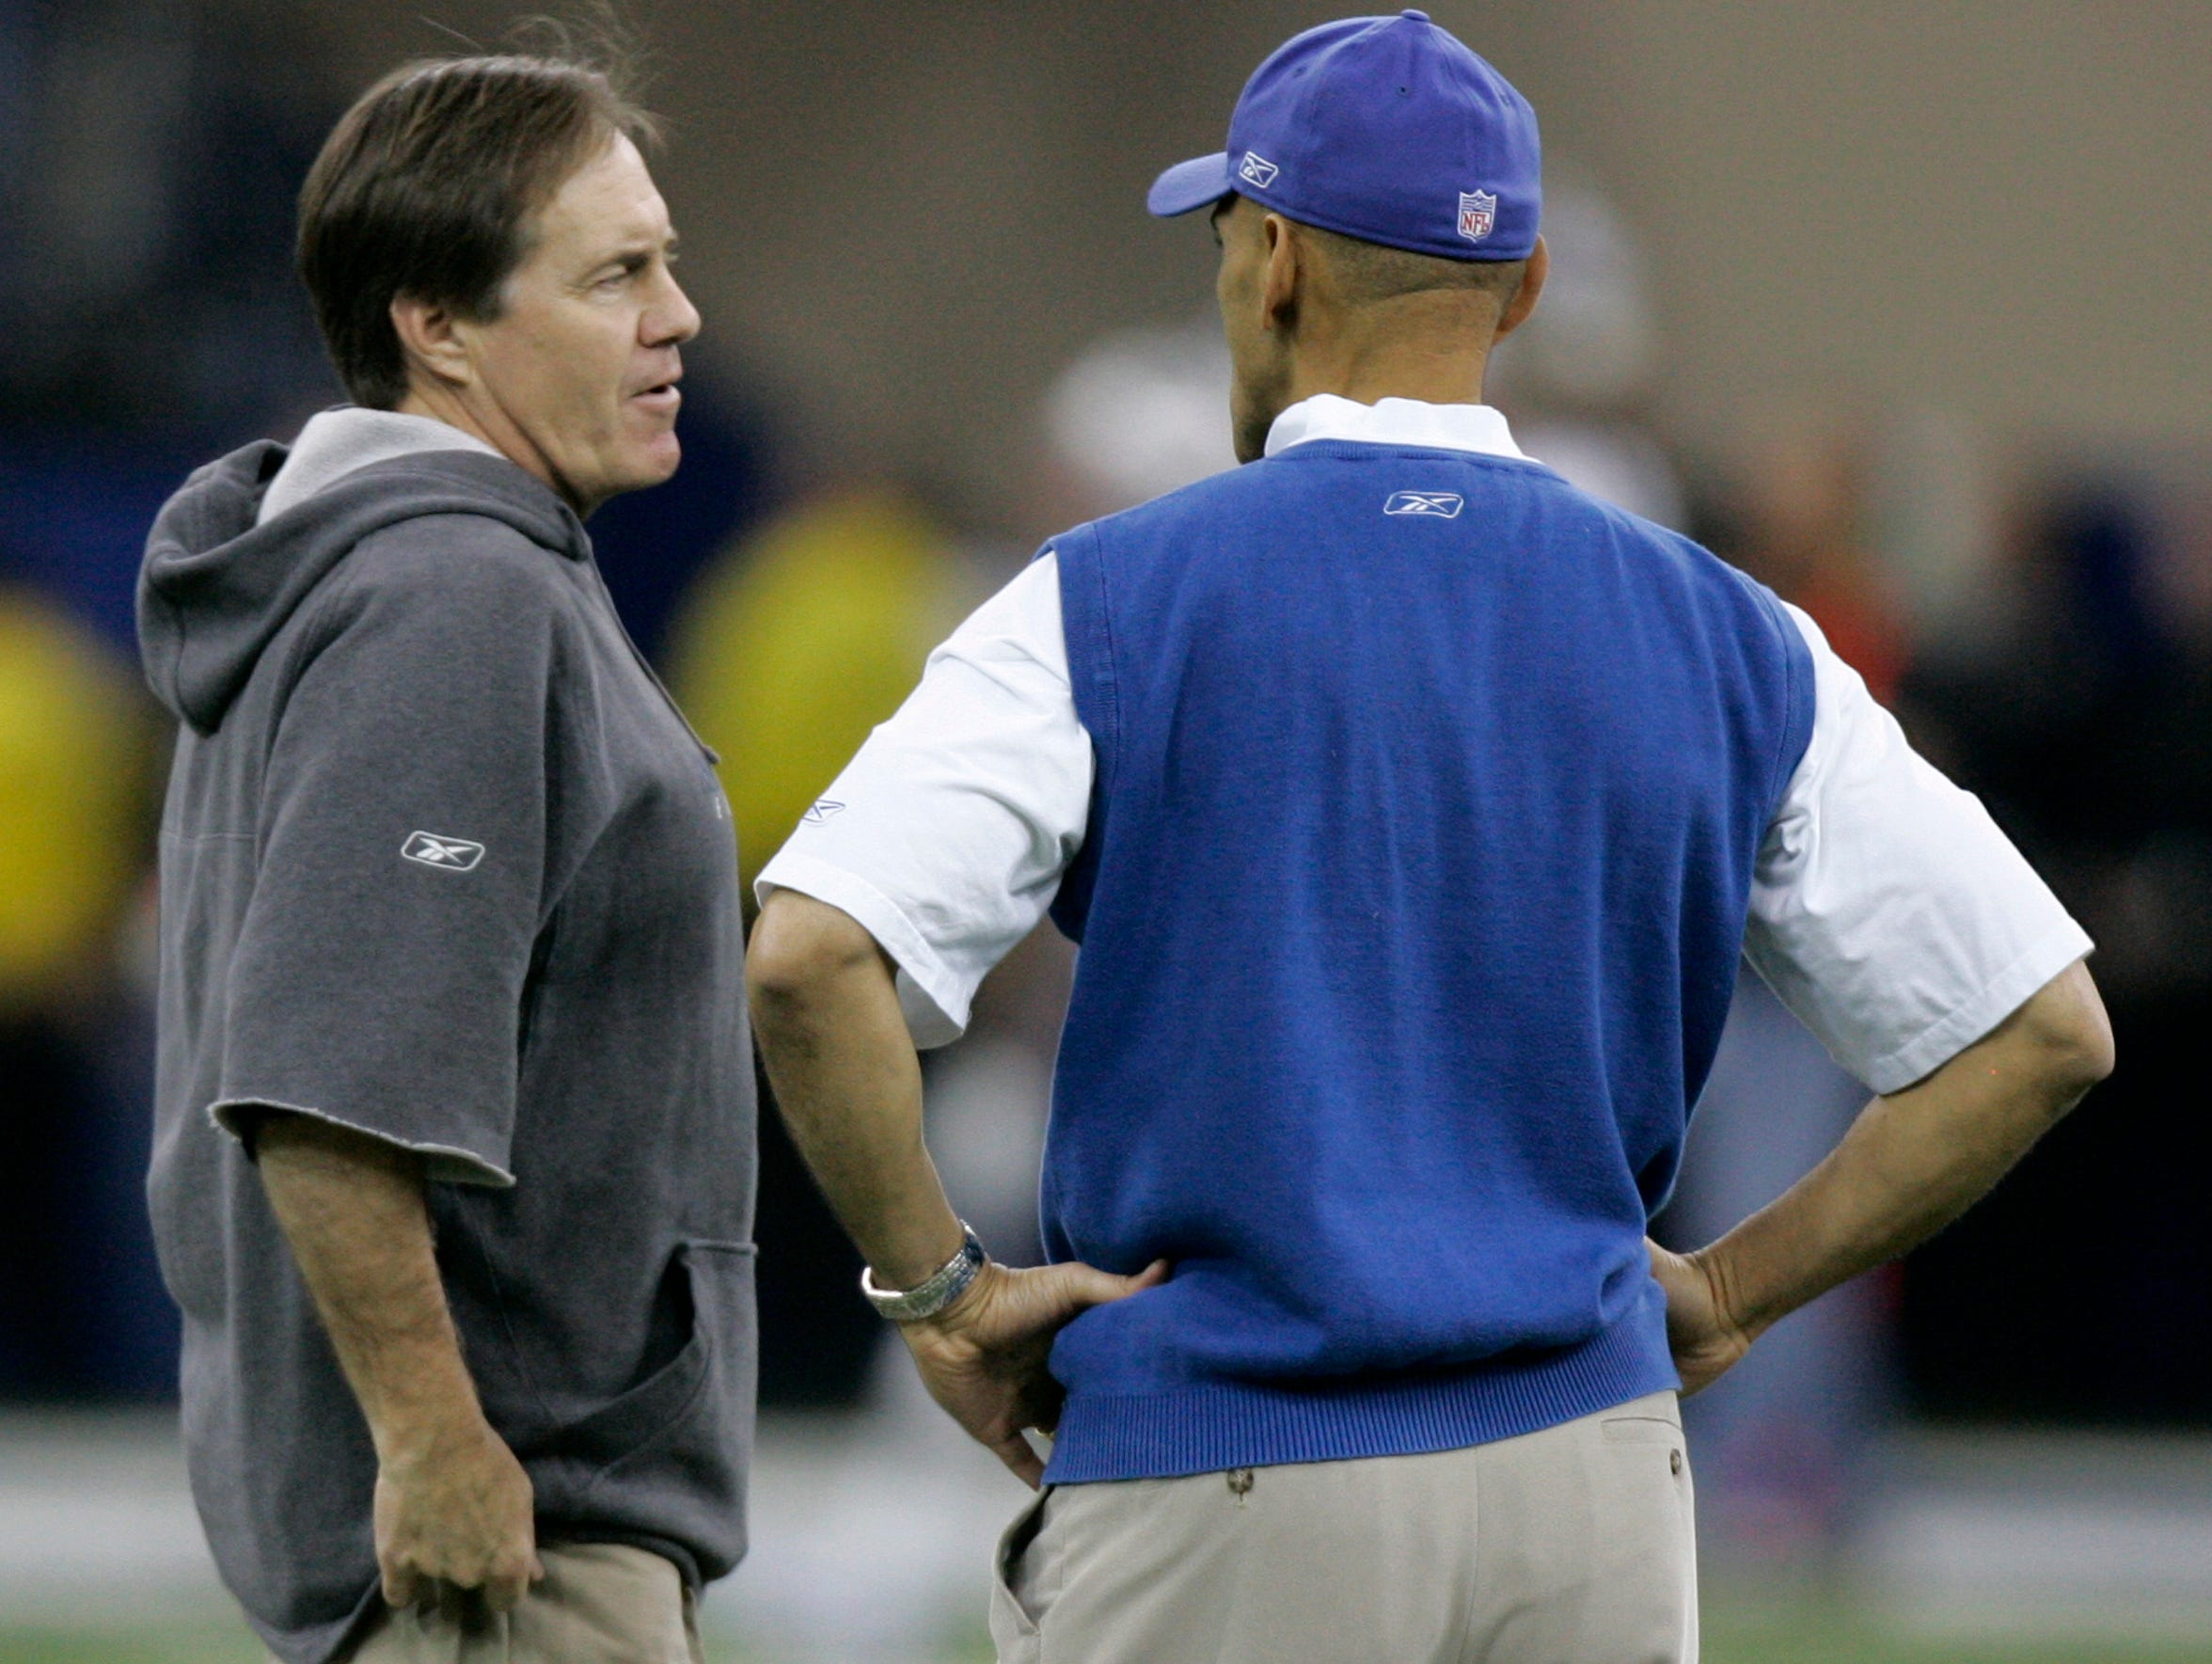 Bill Belichick and Tony Dungy shared a brief chat before